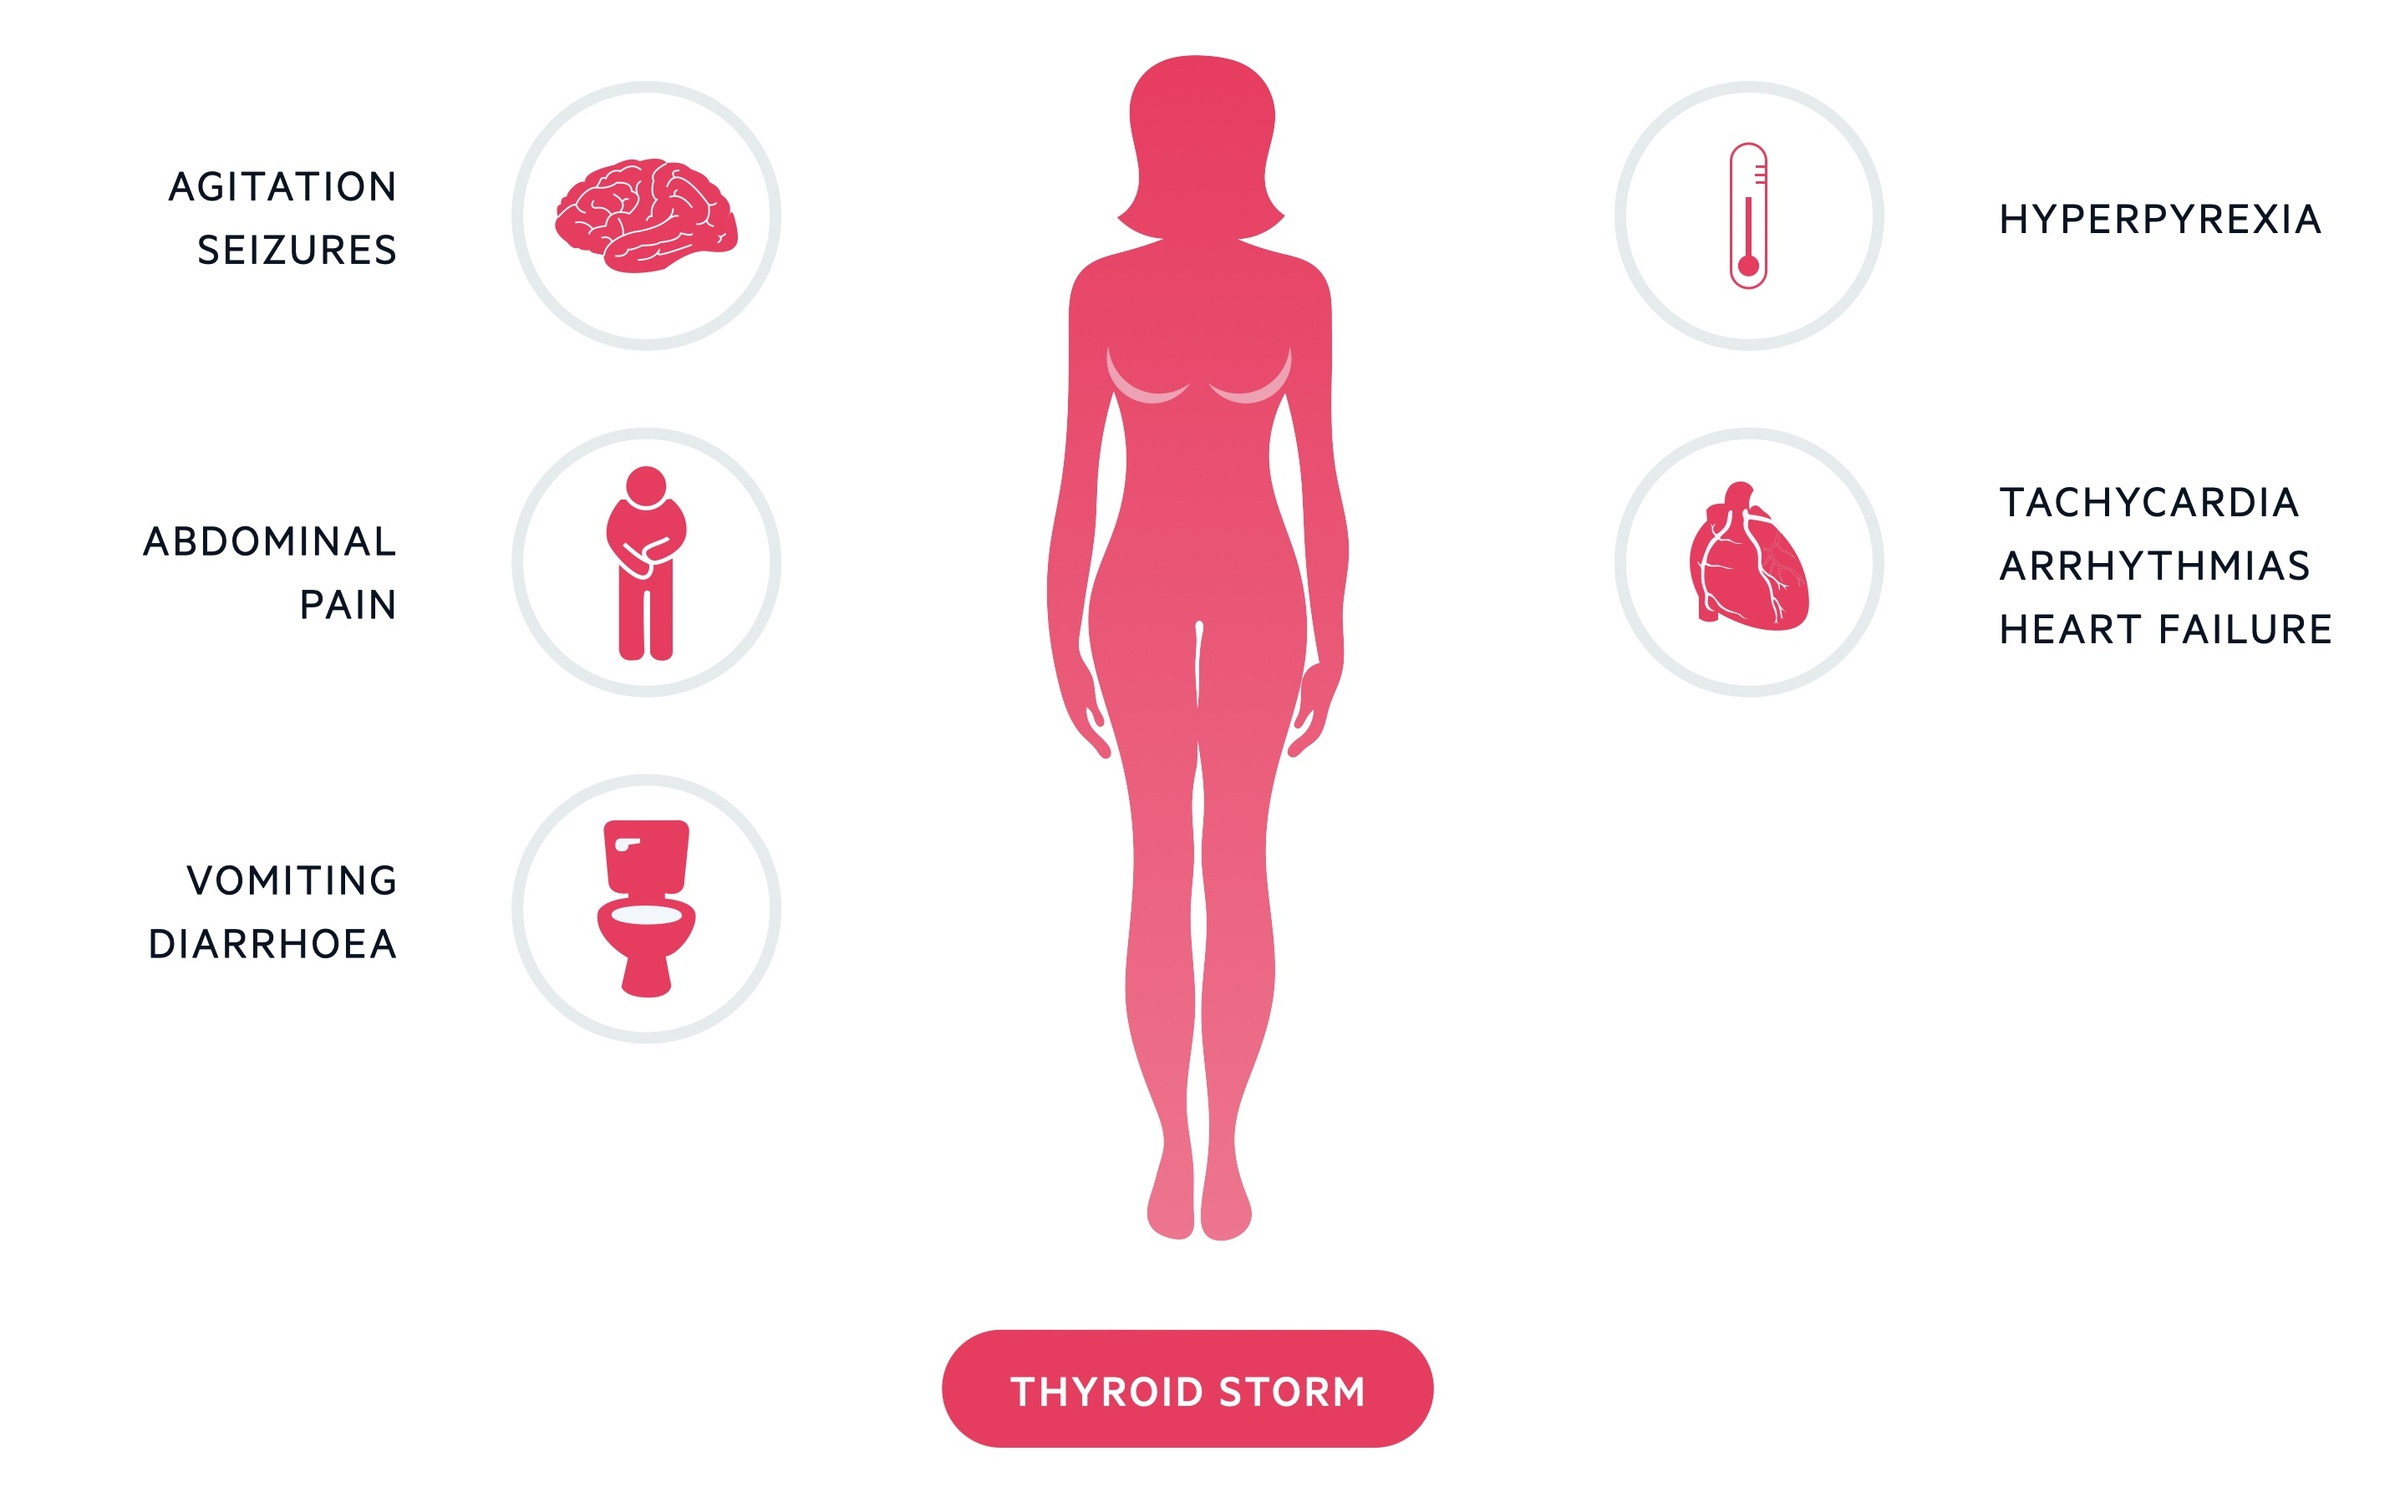 Clinical features of thyroid storm